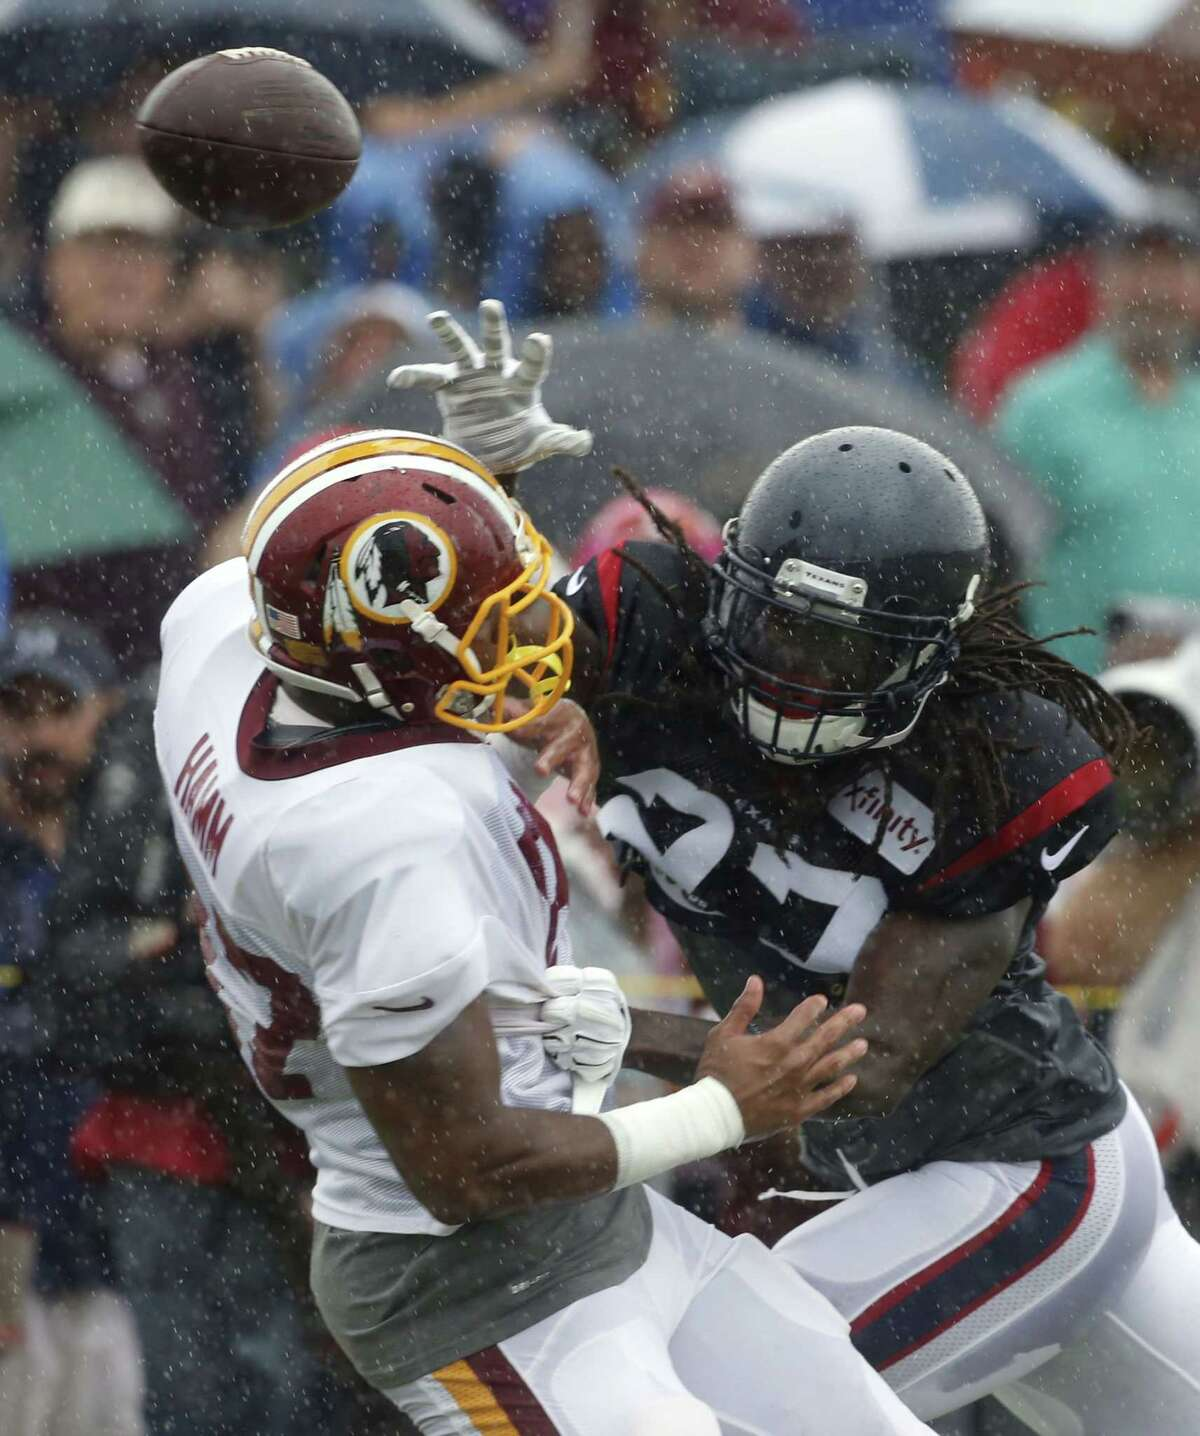 The Houston Texans' Stevie Brown, right, knocks away a pass intended for Washington's Je'Ron Hamm during training camp on Saturday in Richmond, Va.